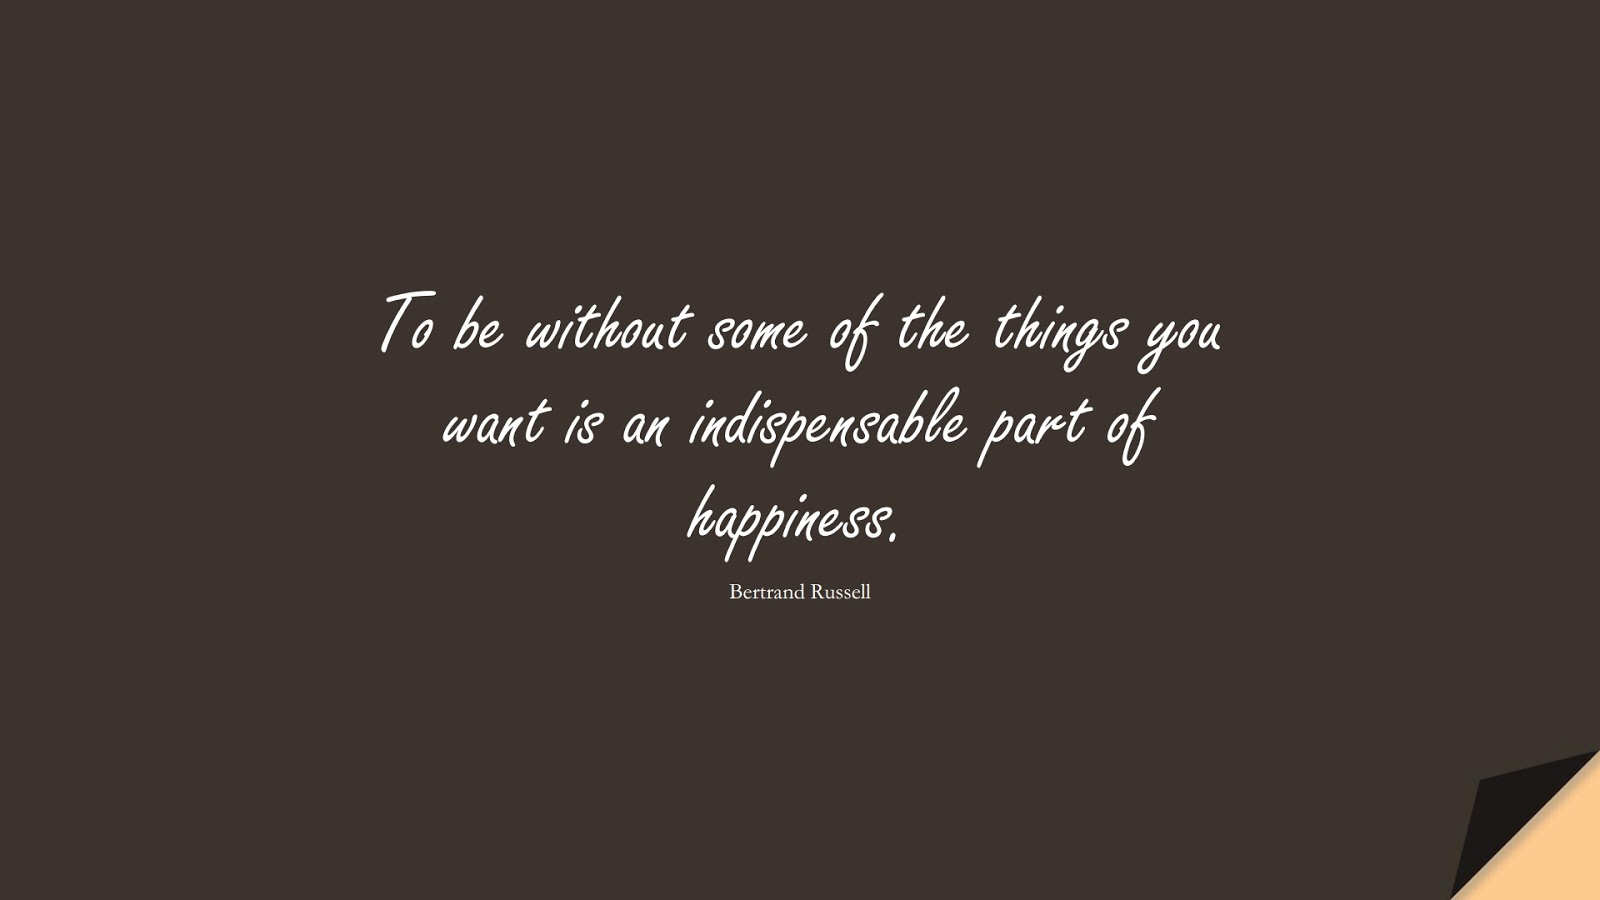 To be without some of the things you want is an indispensable part of happiness. (Bertrand Russell);  #HappinessQuotes